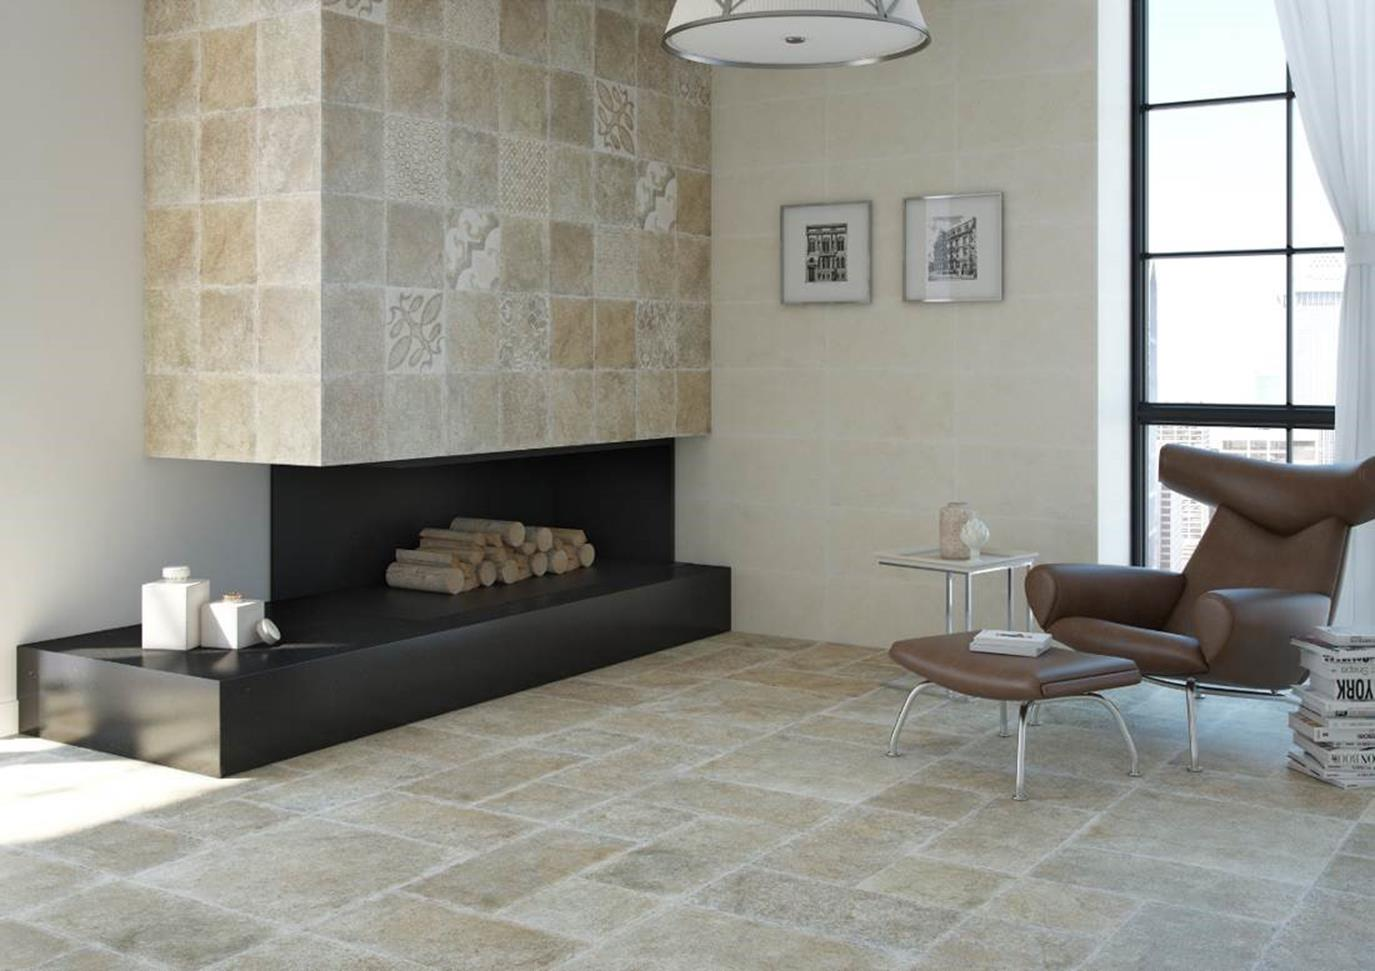 Fleeting moment tileofspainusa porcelain floor tile in 605 x 605 cm 24 dailygadgetfo Image collections